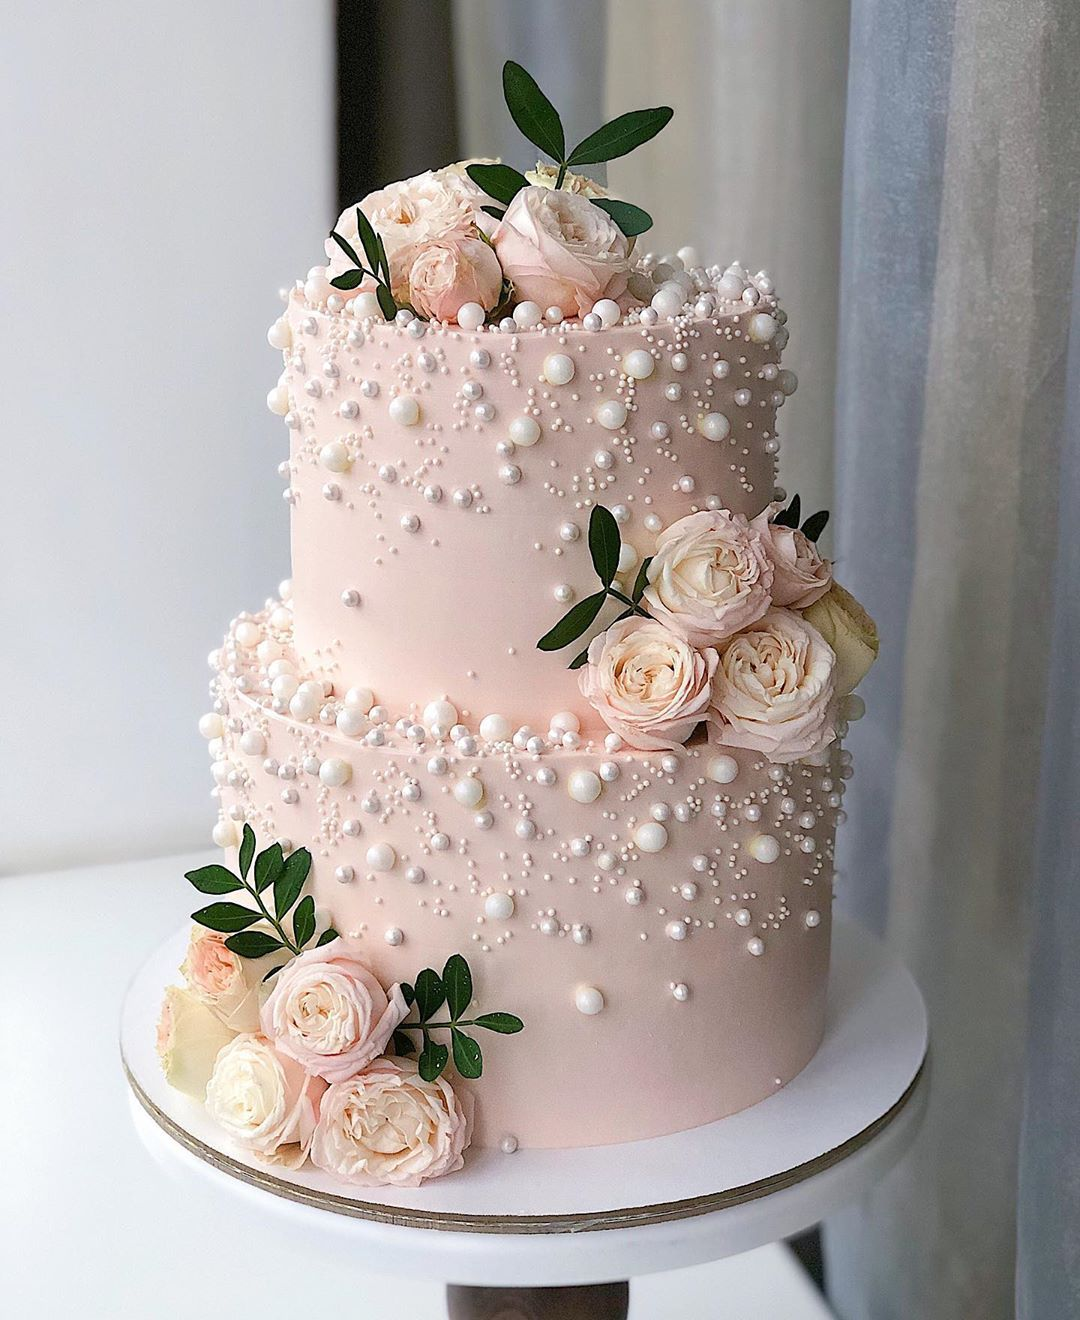 Beautiful Wedding Cakes Designs Inspo 2020 Wedding Cake